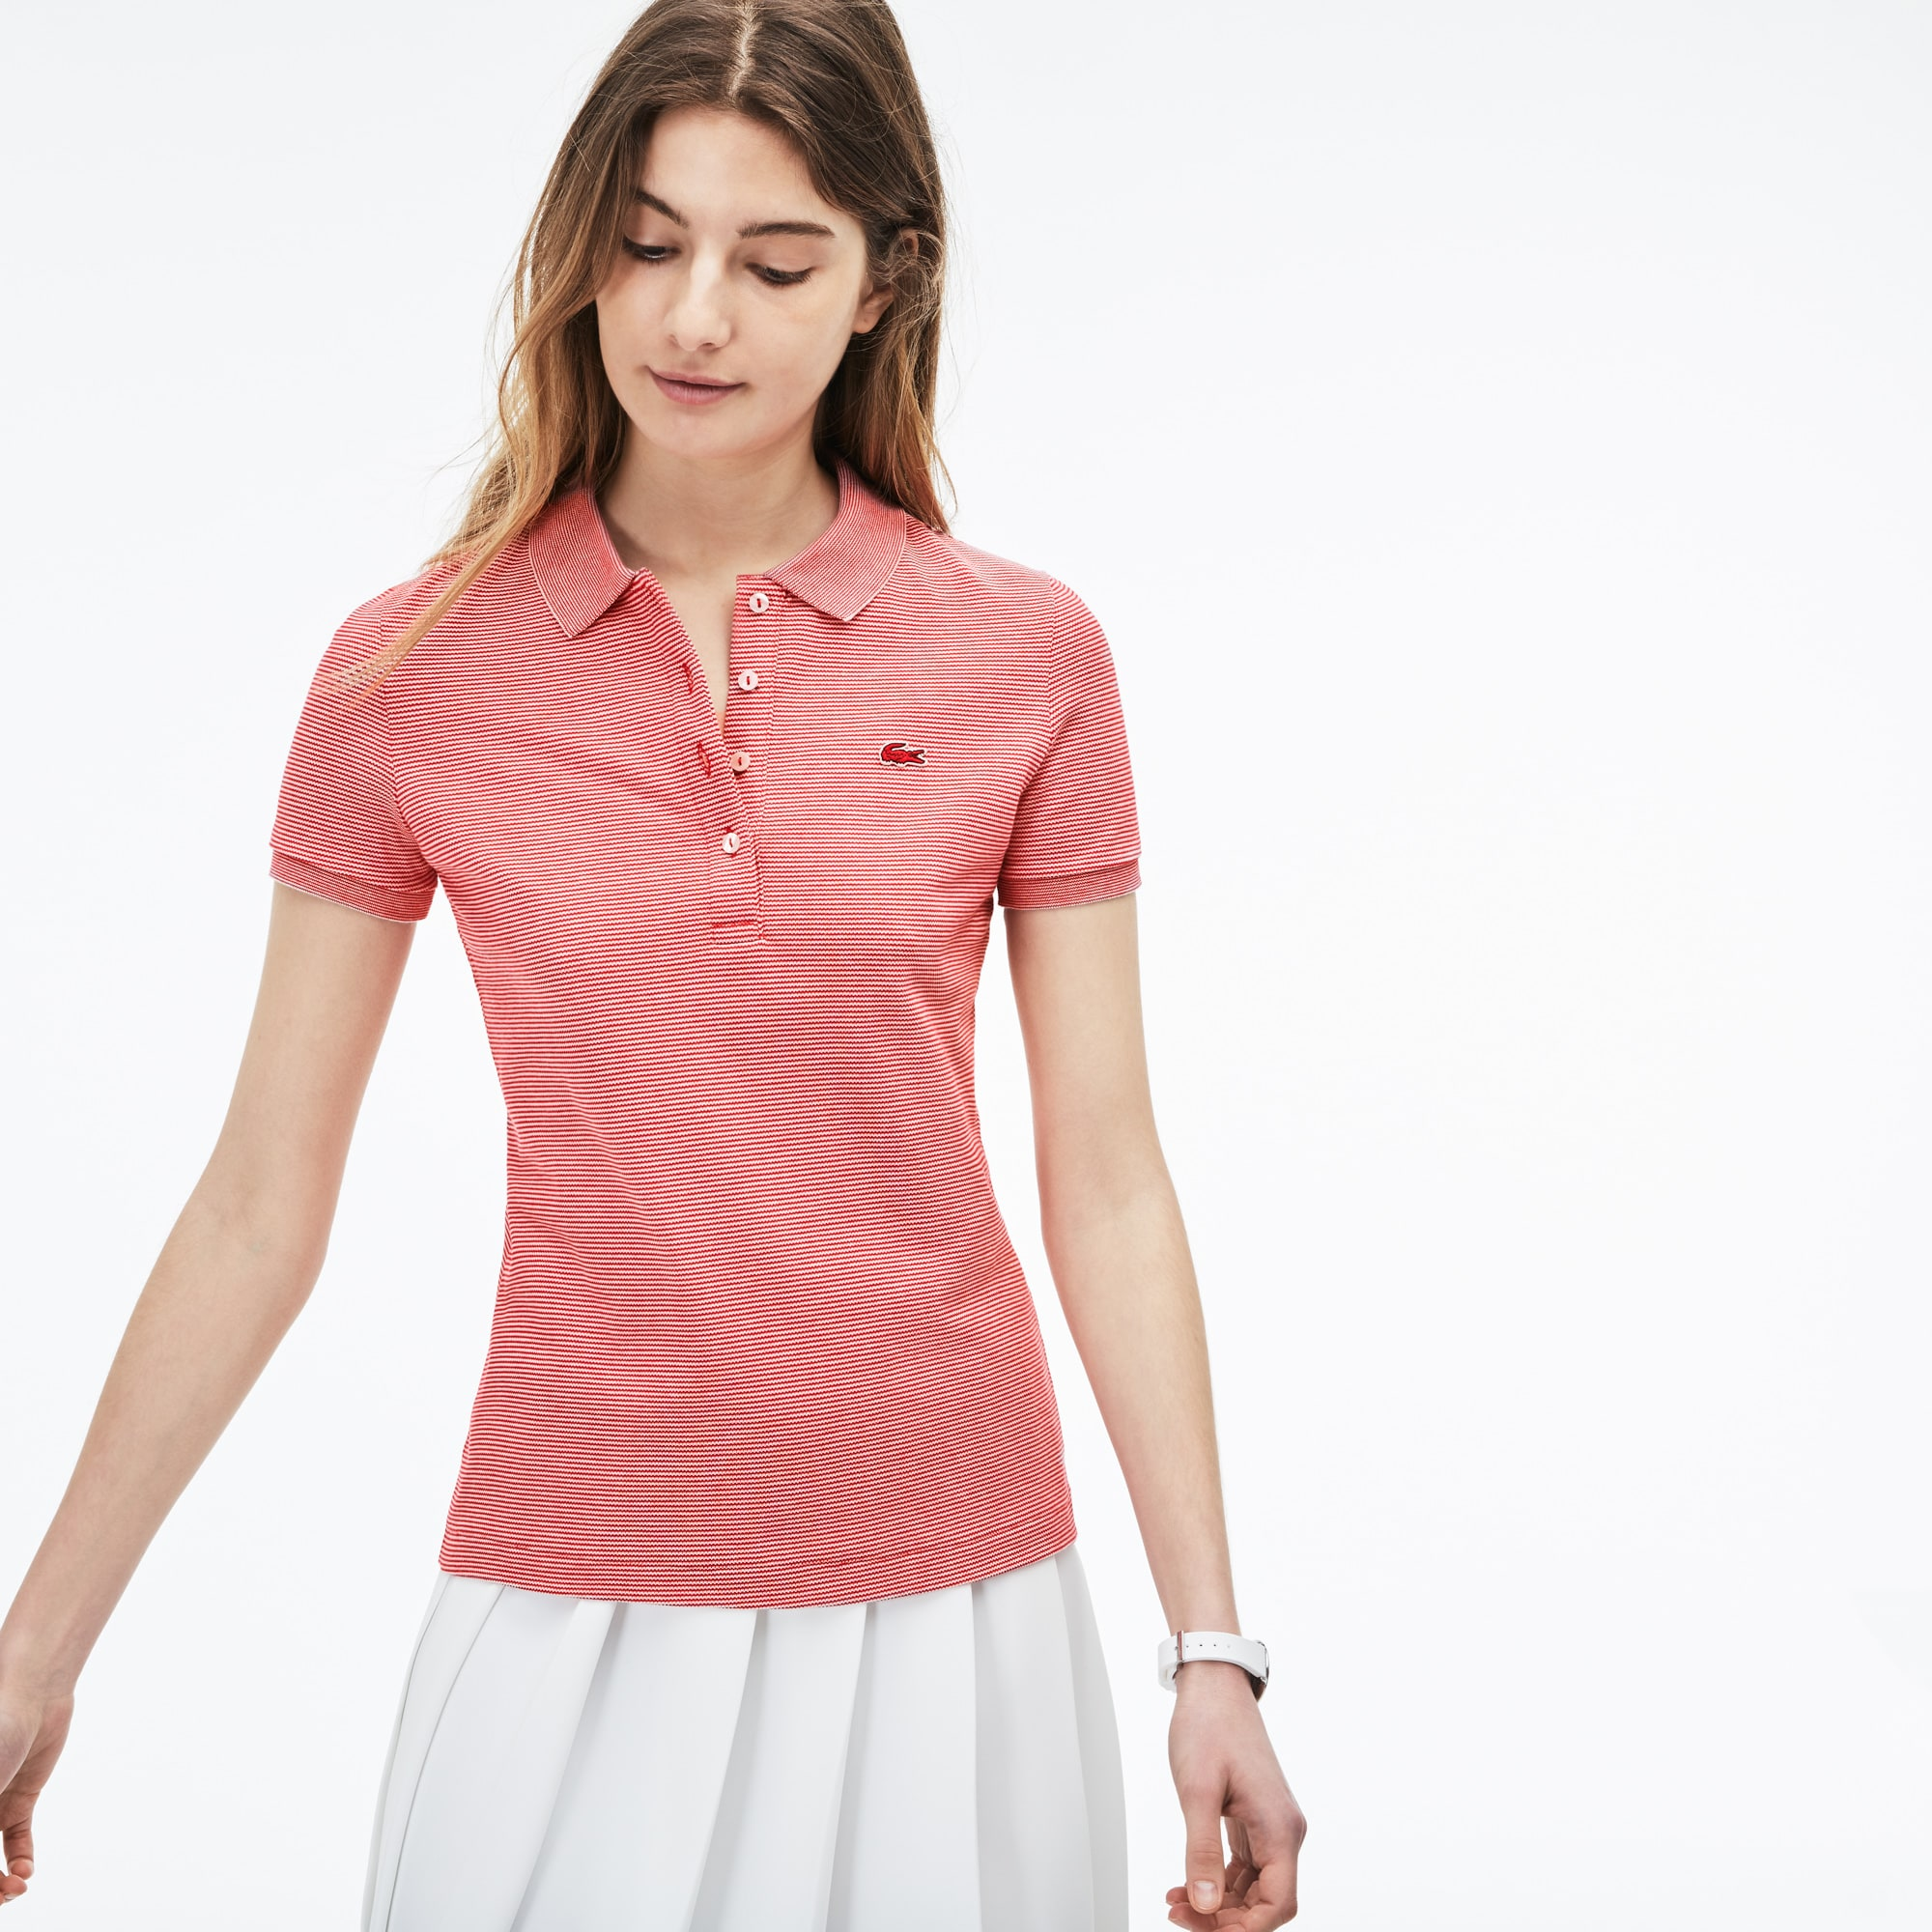 Polo Shirts for Women  a4d5ae6d05